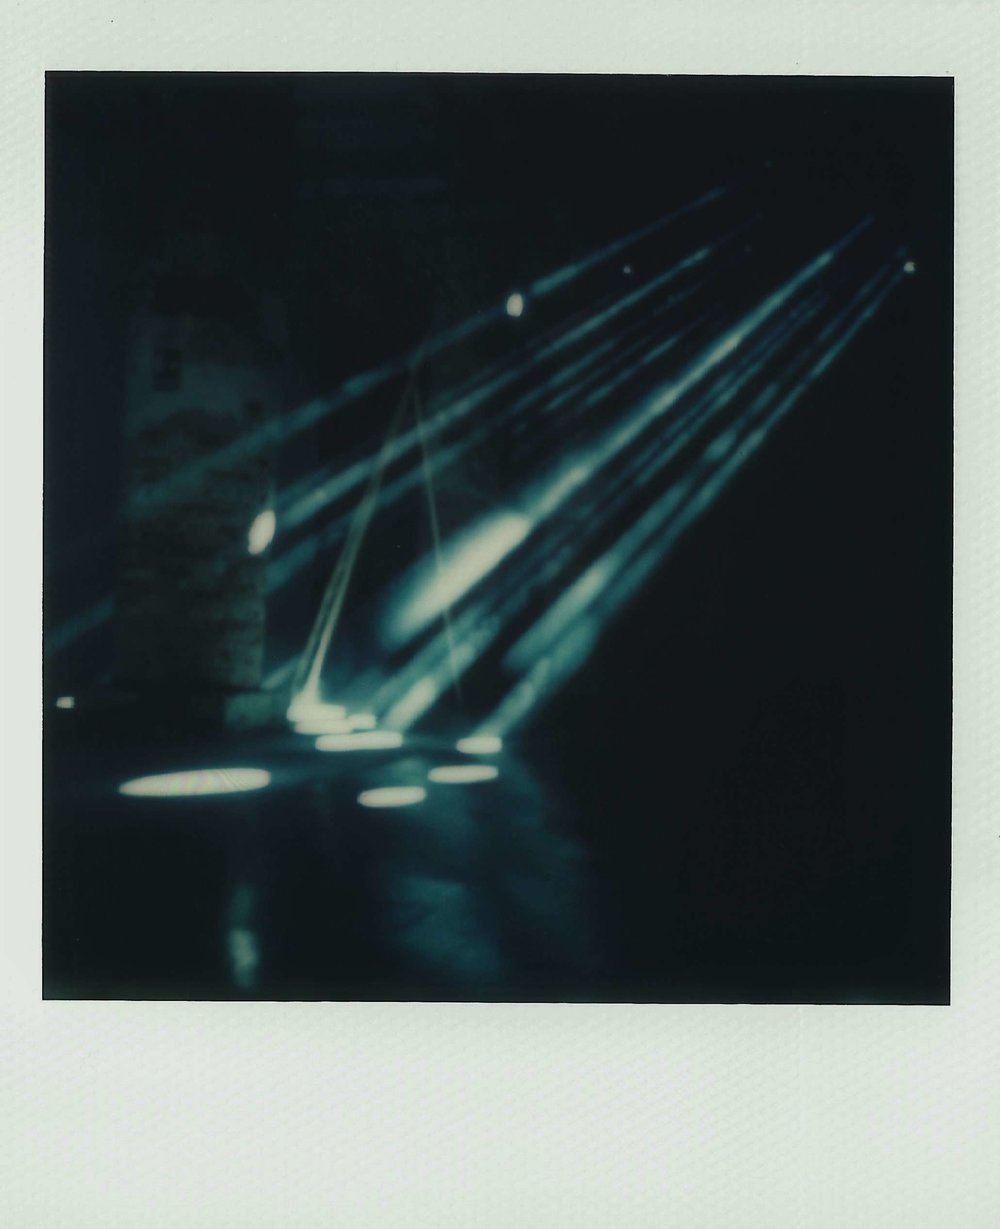 Light Holes | Polaroid SX70 | Impossible Project 70 Color | Marina Iní | @marina.ini